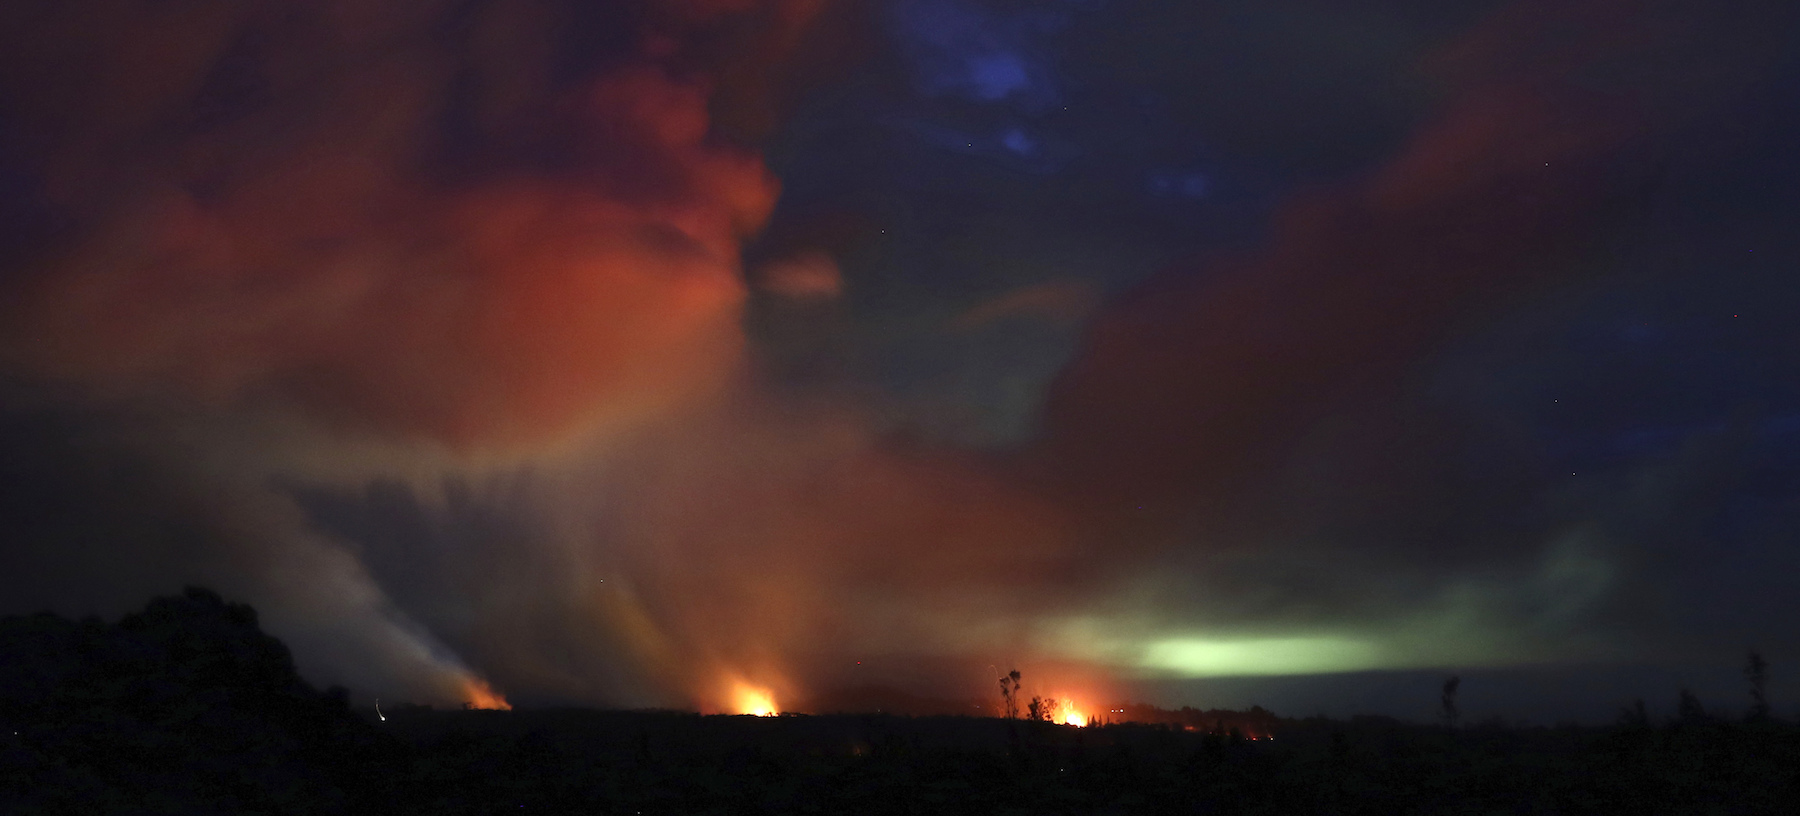 <div class='meta'><div class='origin-logo' data-origin='AP'></div><span class='caption-text' data-credit='AP Photo/Caleb Jones'>Lava shoots into the night sky from active fissures on the lower east rift of Kilauea volcano, Tuesday, May 15, 2018 near Pahoa, Hawaii.</span></div>